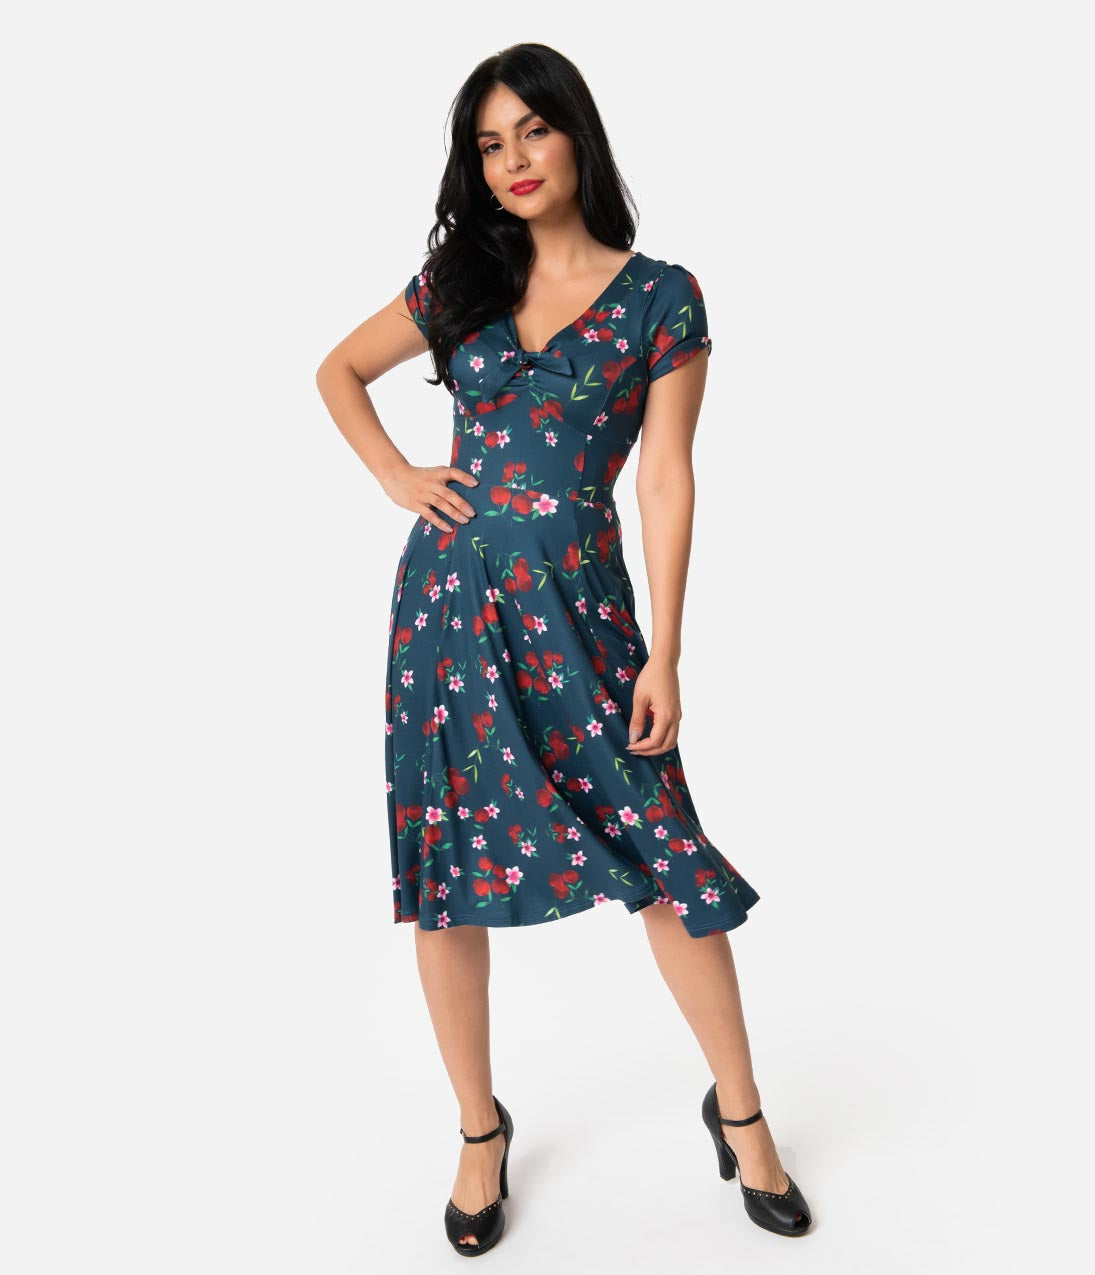 1940s Fashion Advice for Tall Women Unique Vintage 1940S Style Navy  Cherry Floral Short Sleeve Natalie Swing Dress $88.00 AT vintagedancer.com